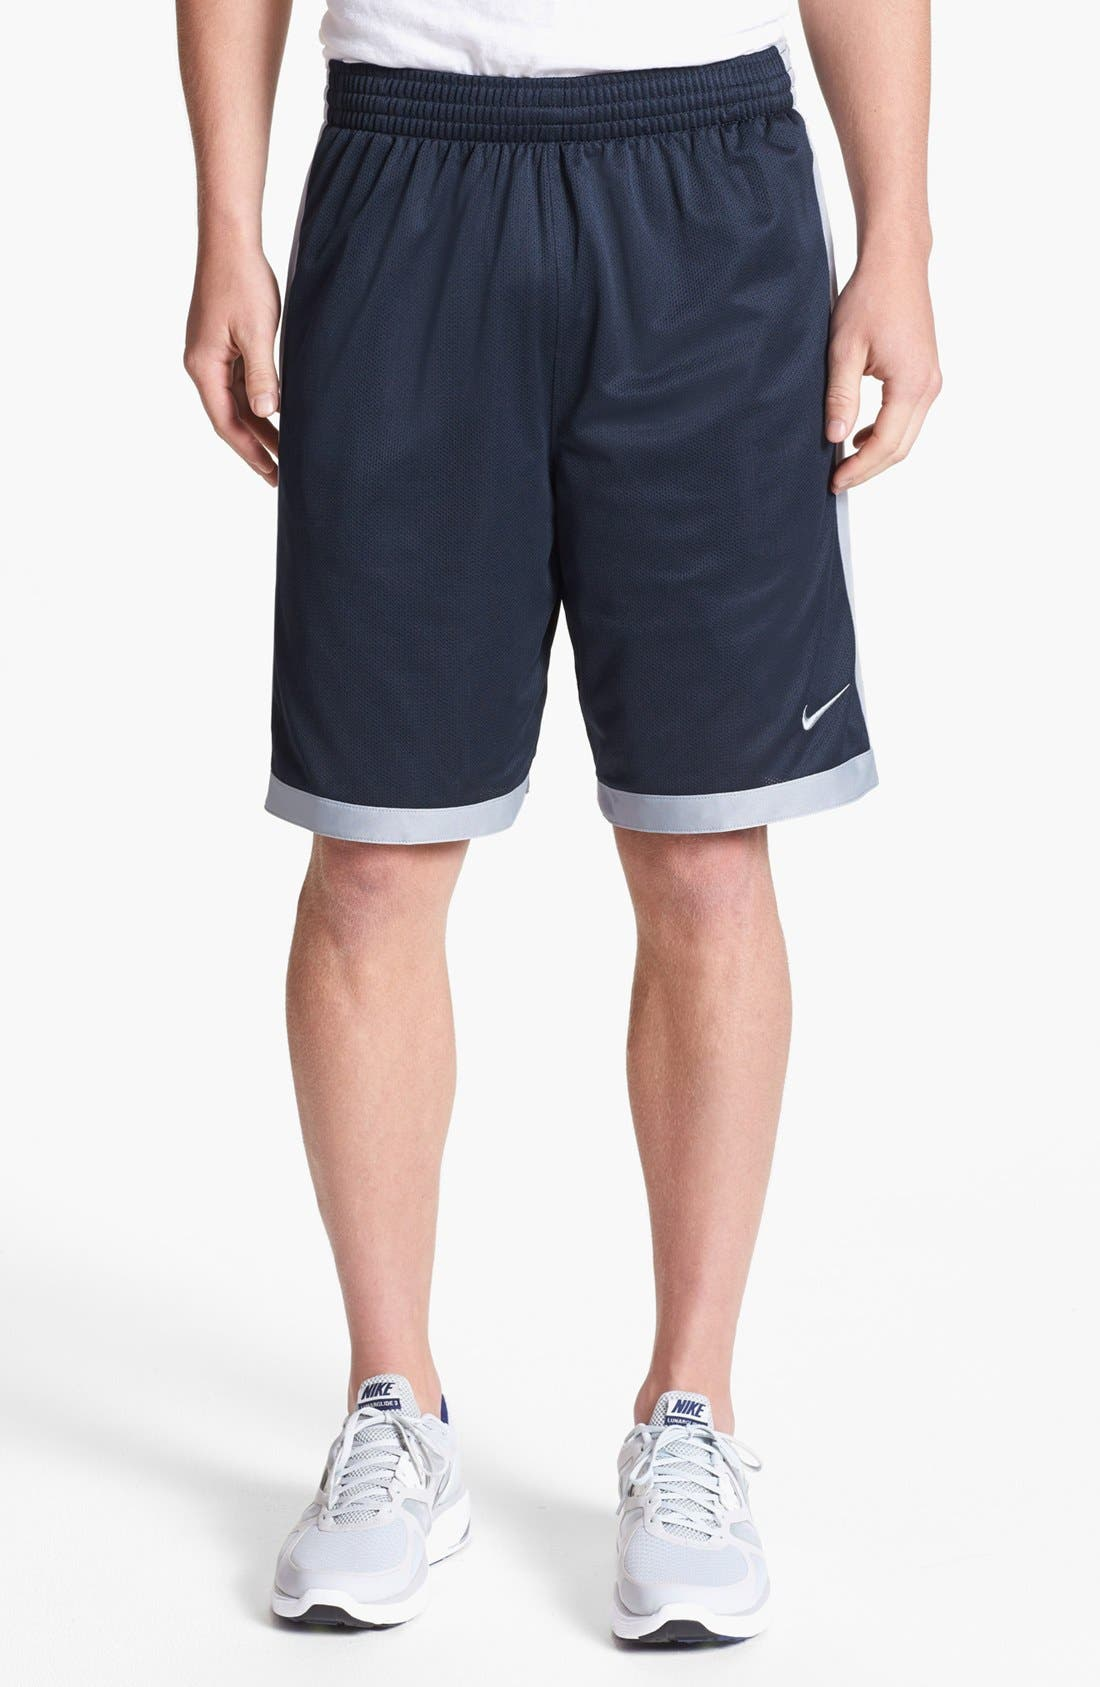 Alternate Image 1 Selected - Nike 'Cash' Mesh Shorts